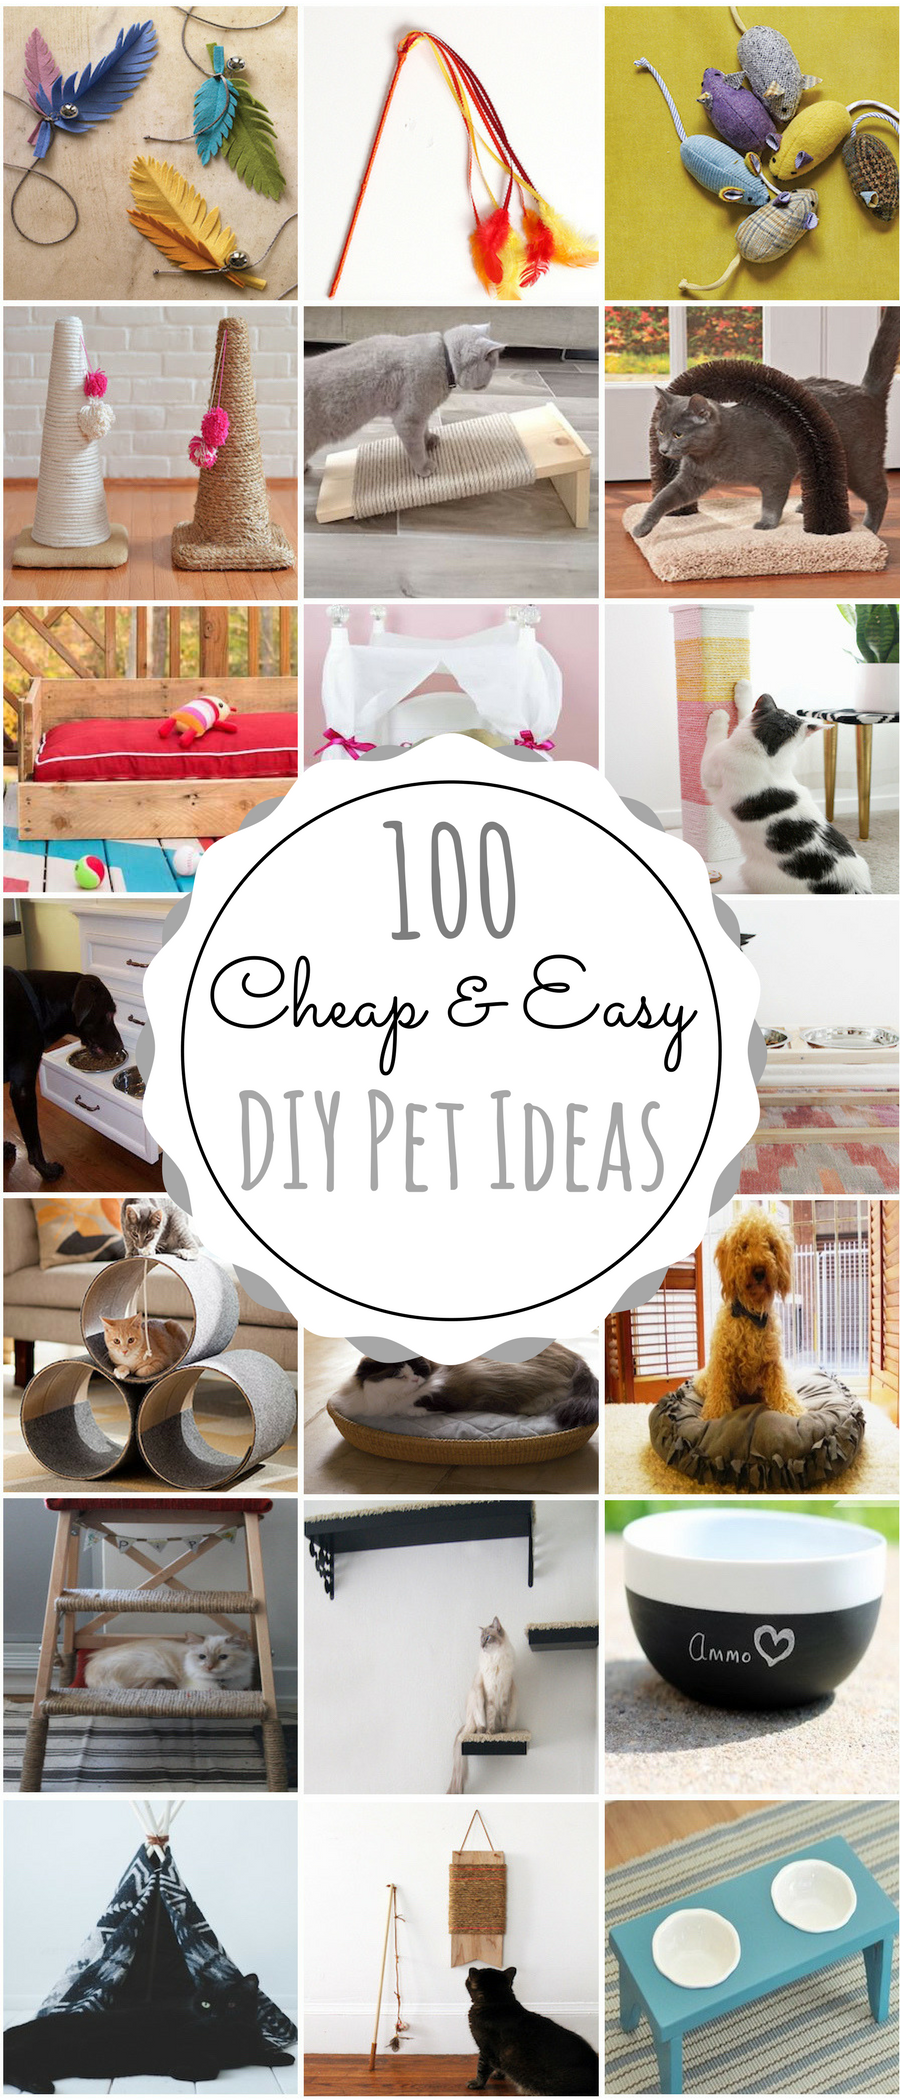 cheap u easy diy pet projects diy home projects pinterest